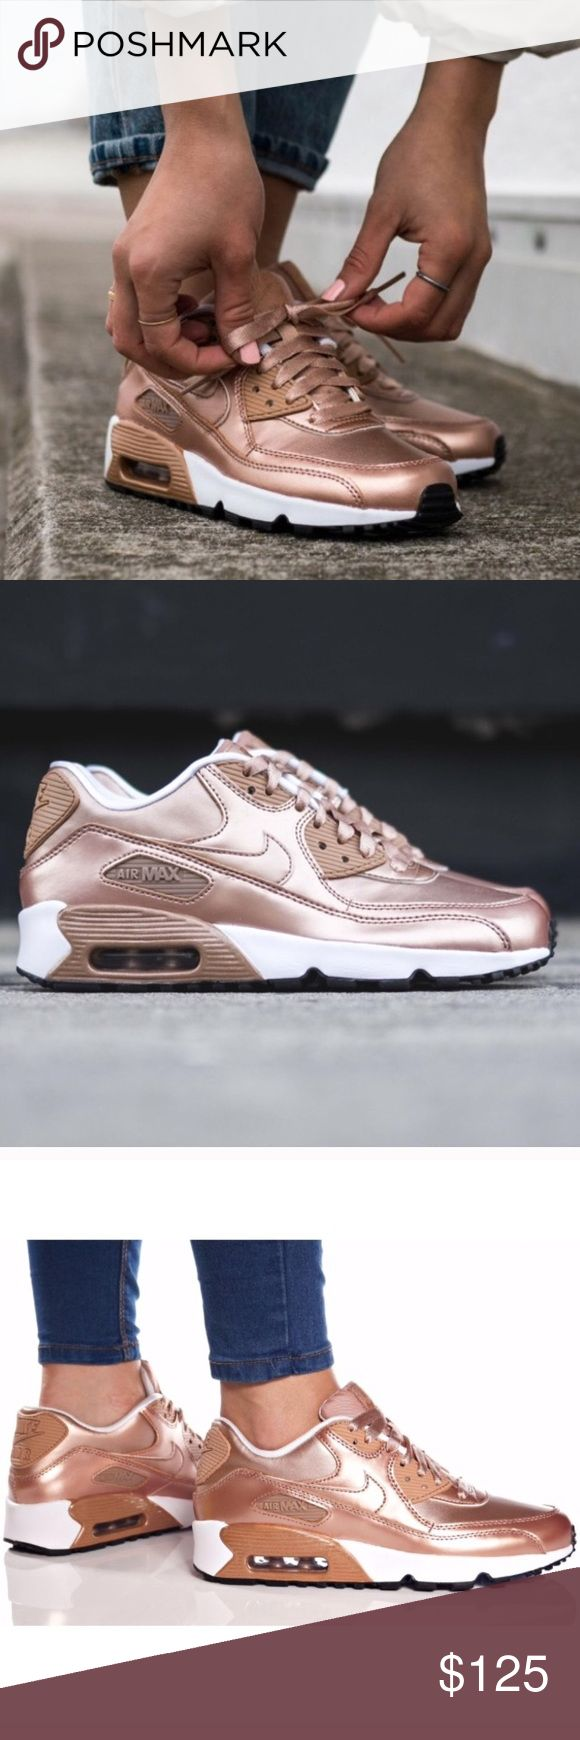 Nike air max 90 metallic bronze rose gold shoes Brand new size 5 youth which converts to a women's size 6.5. I will list a sizing chart for reference. No box. Ships same day or very next. Nike Shoes Sneakers